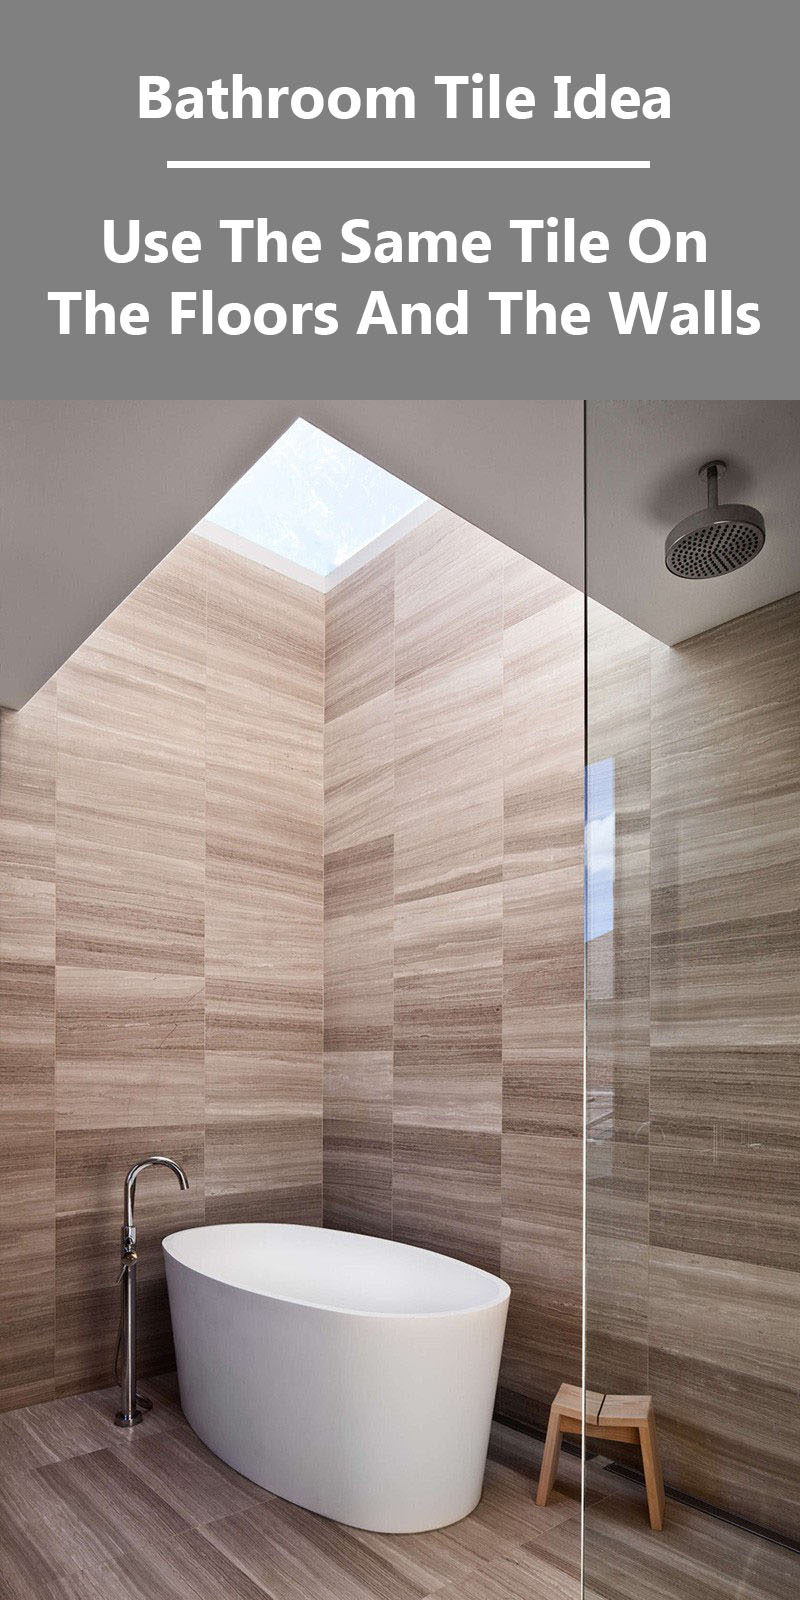 Bathroom Tile Idea - Use The Same Tile